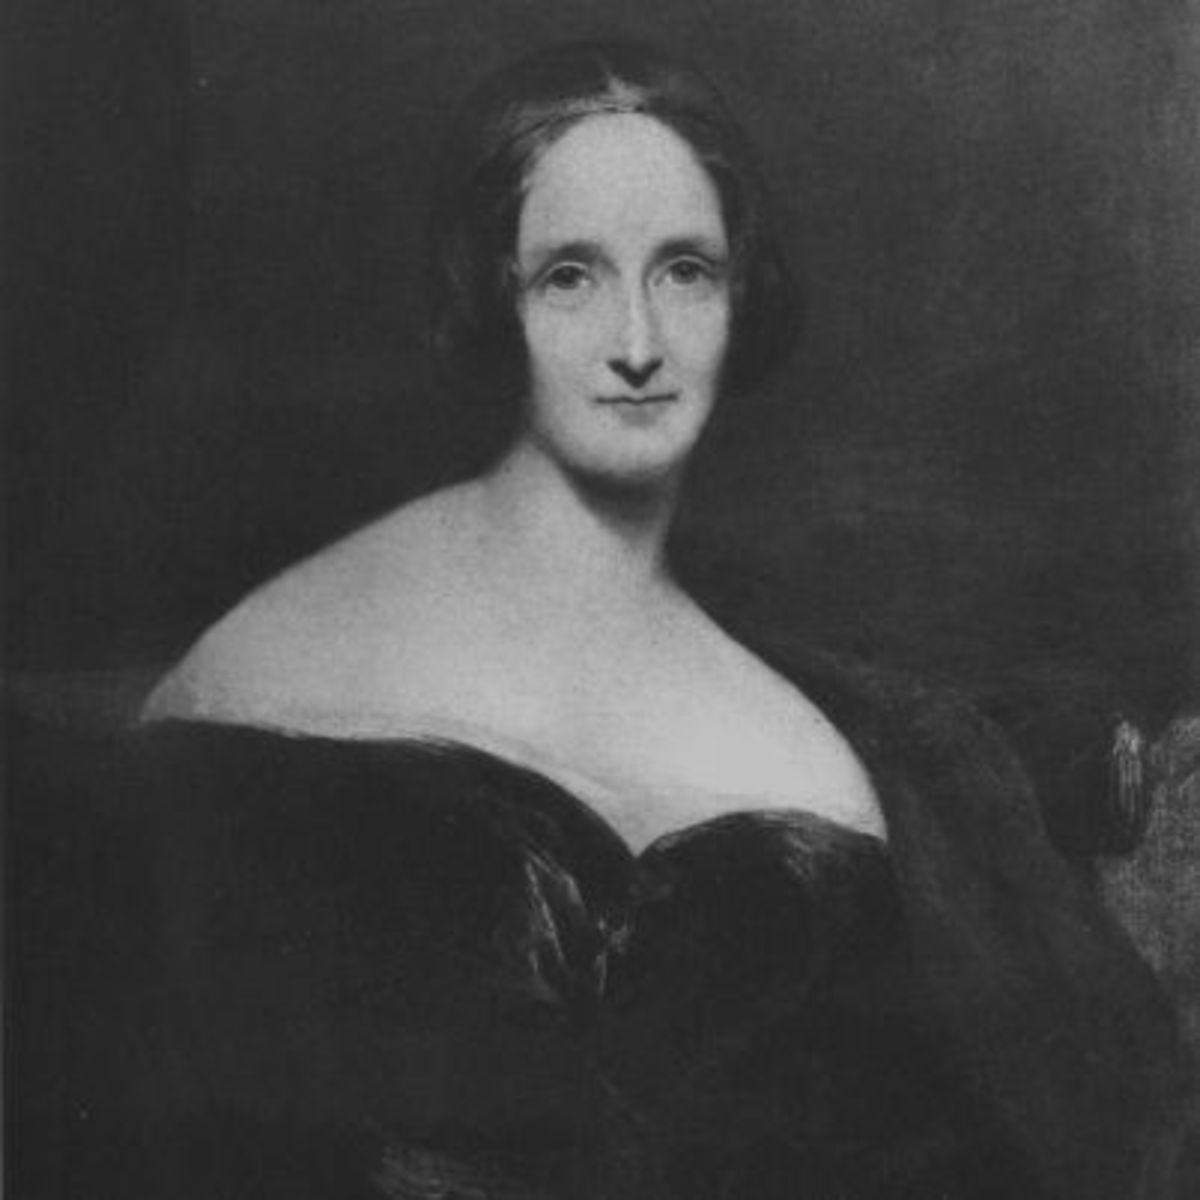 A portrait of Mary Shelley, a writer of the Romanticism movement.